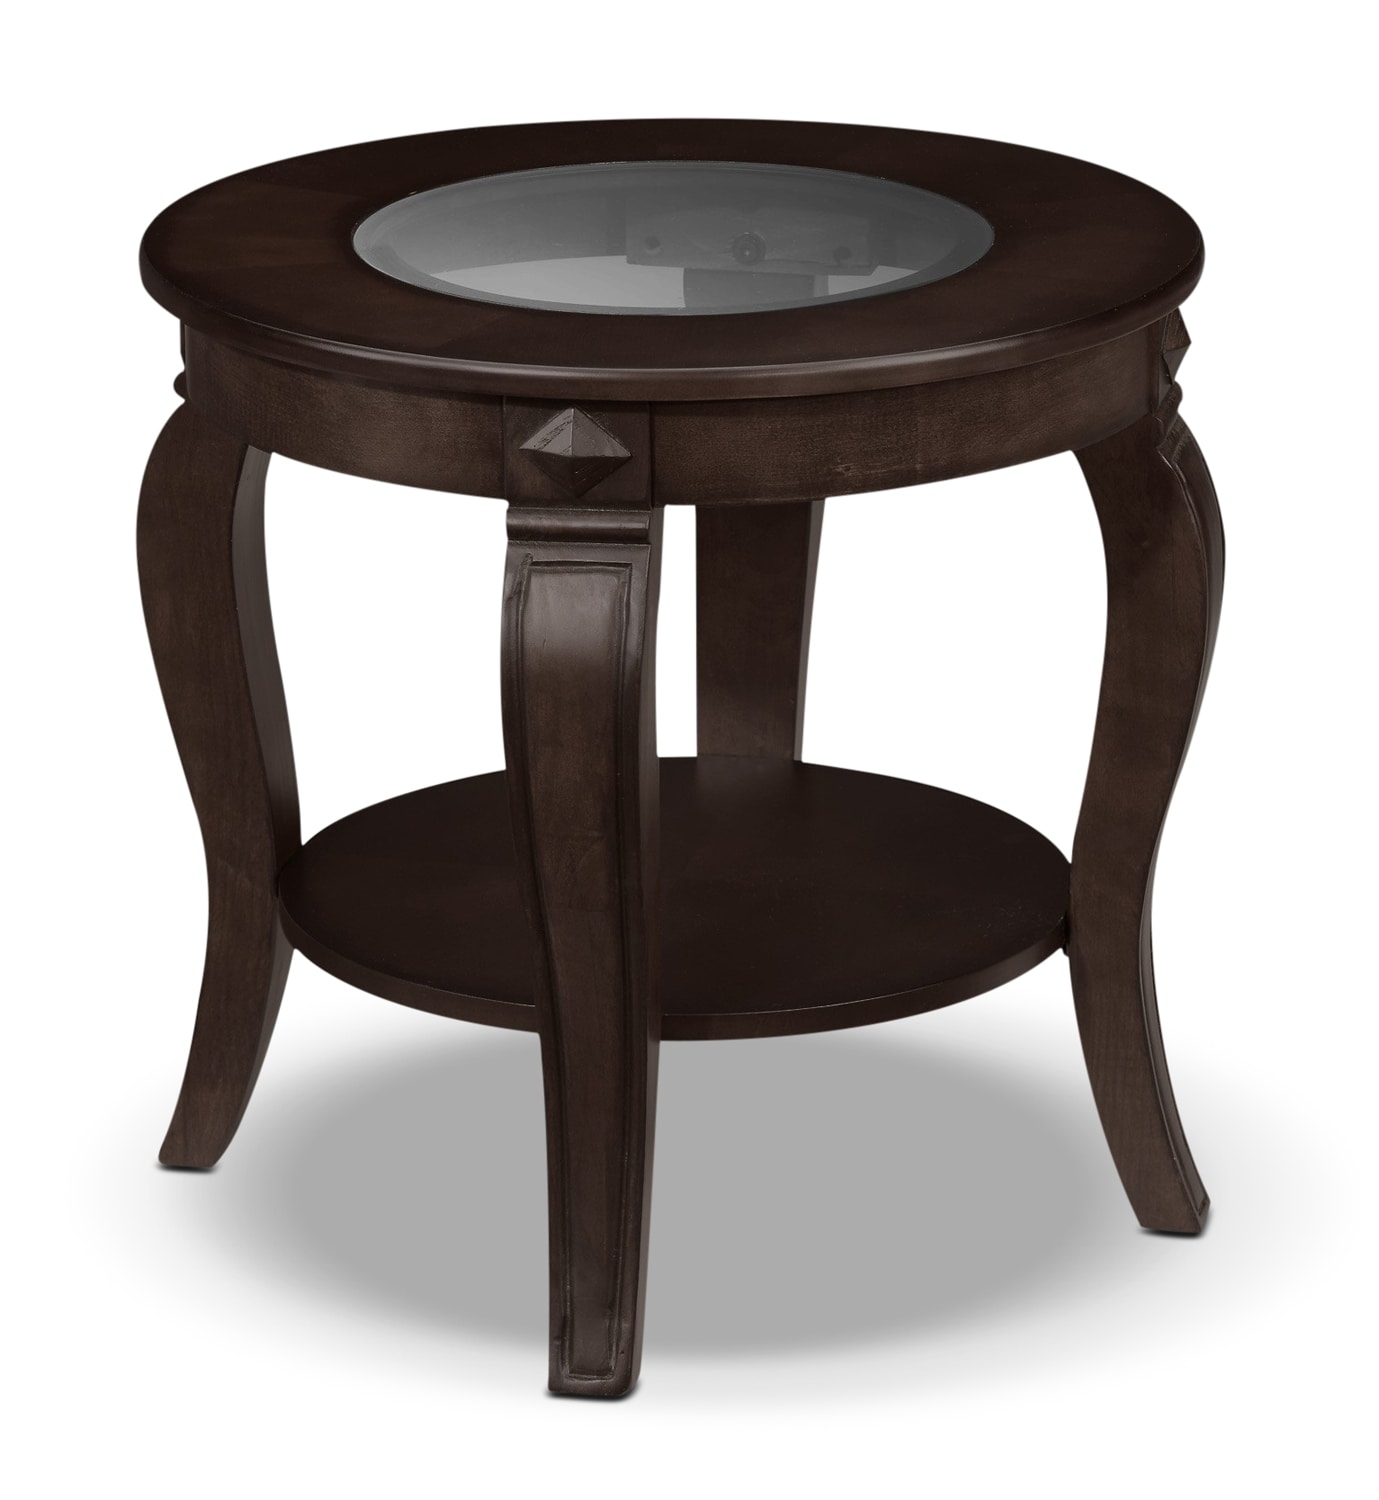 Madeira End Table - Chocolate